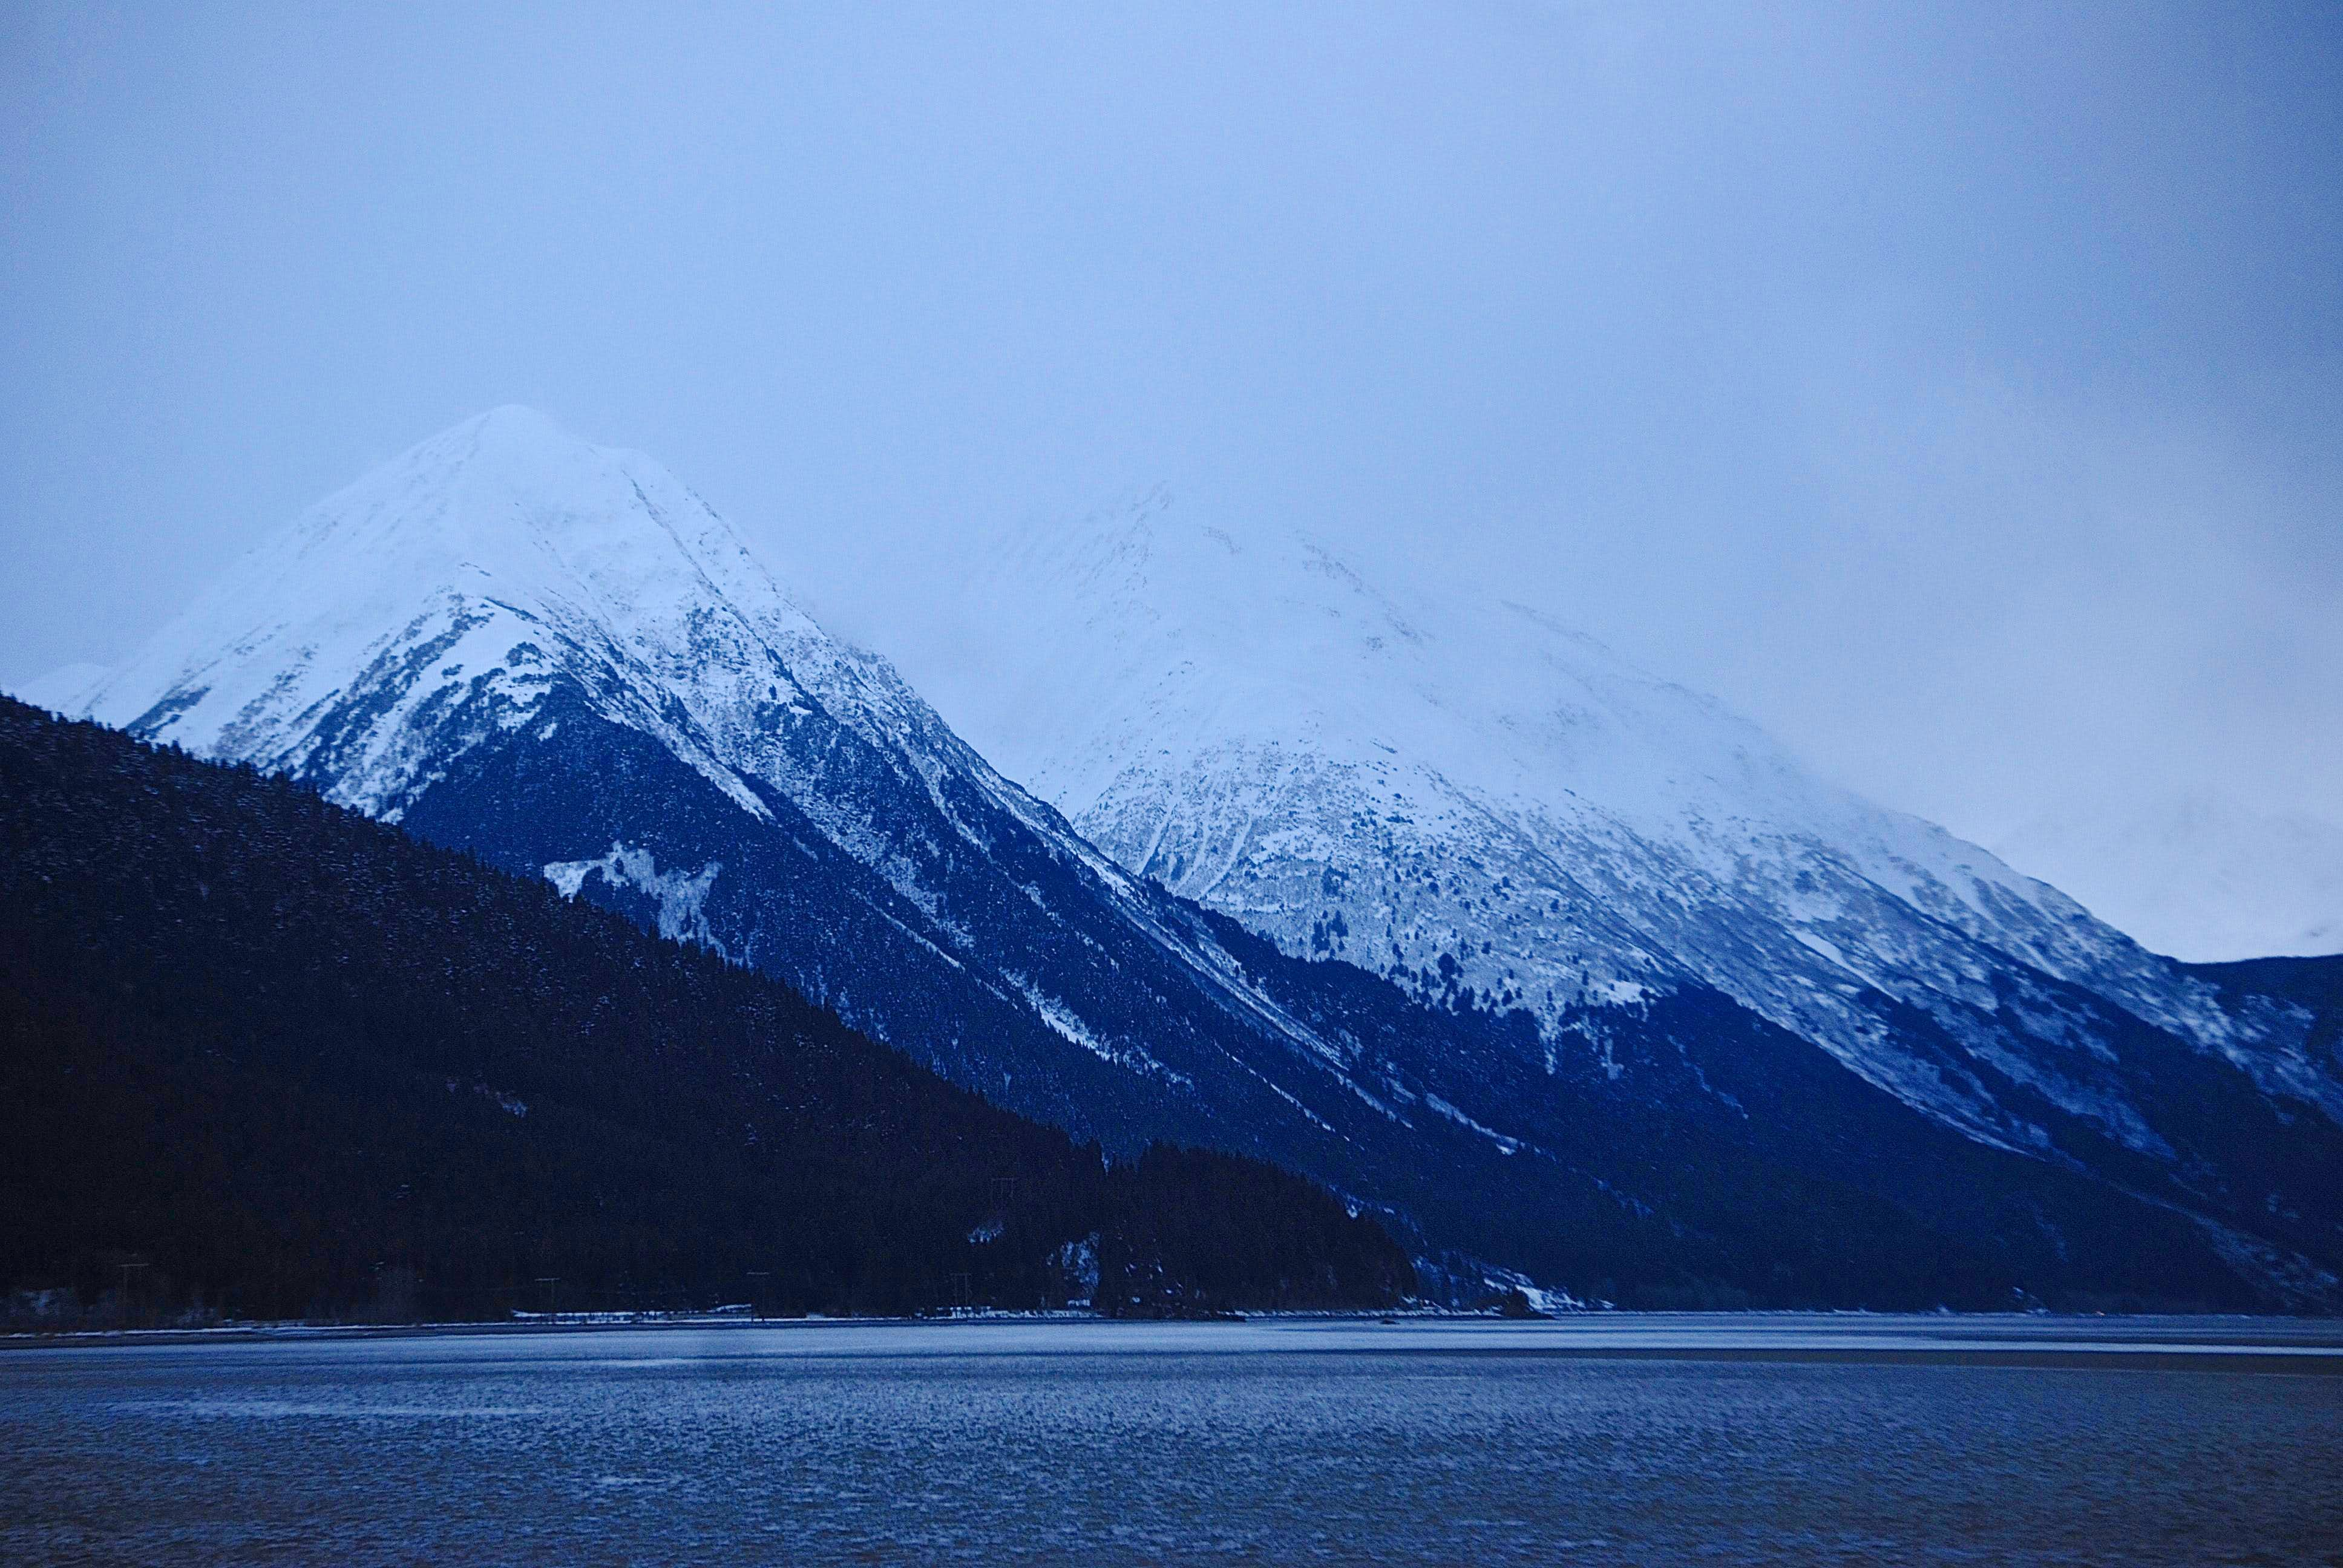 Chugach Mountains, Alaska: December 28th 2014